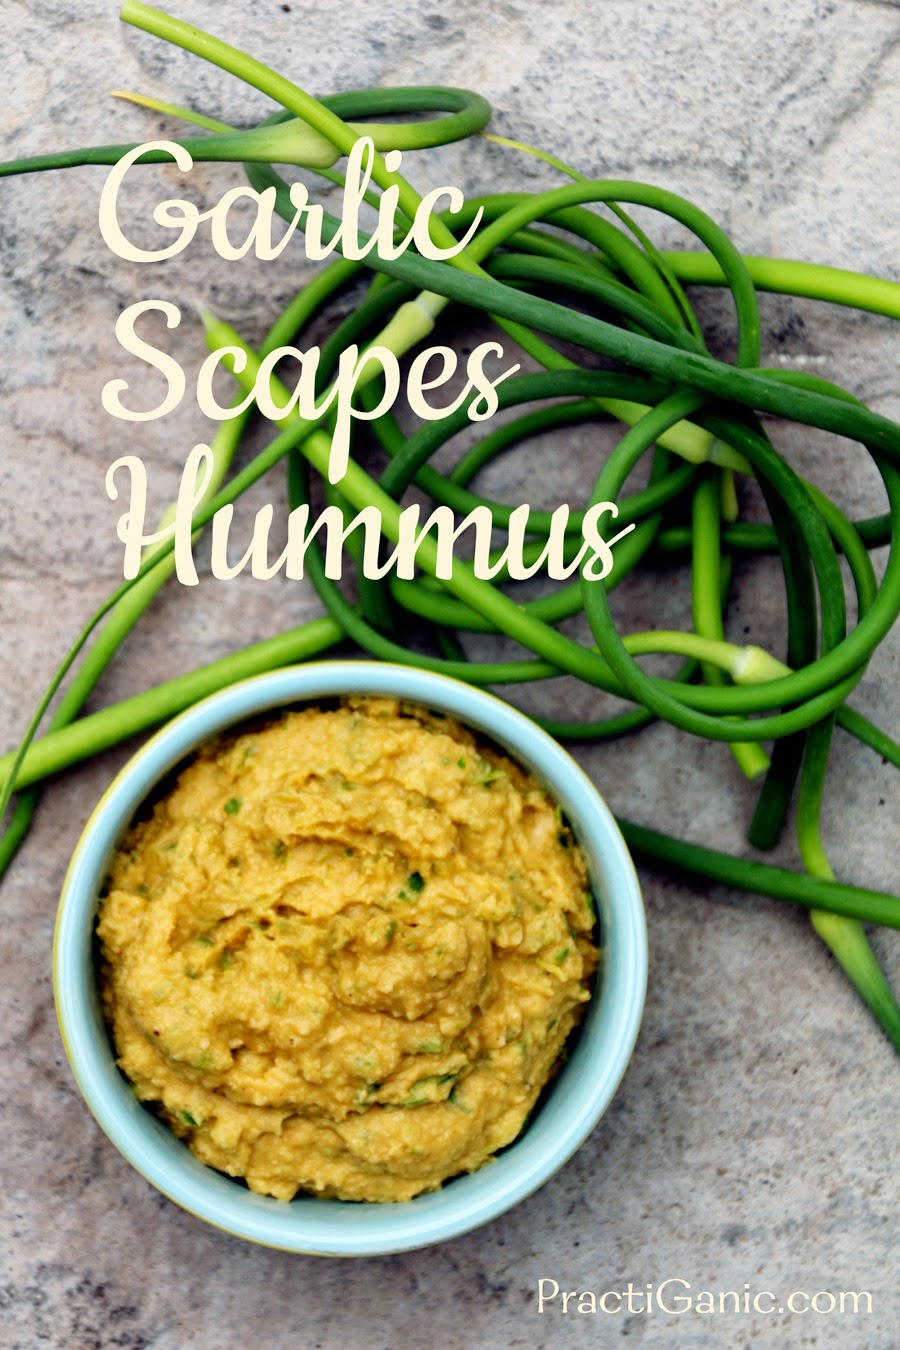 Garlic Scapes Hummus